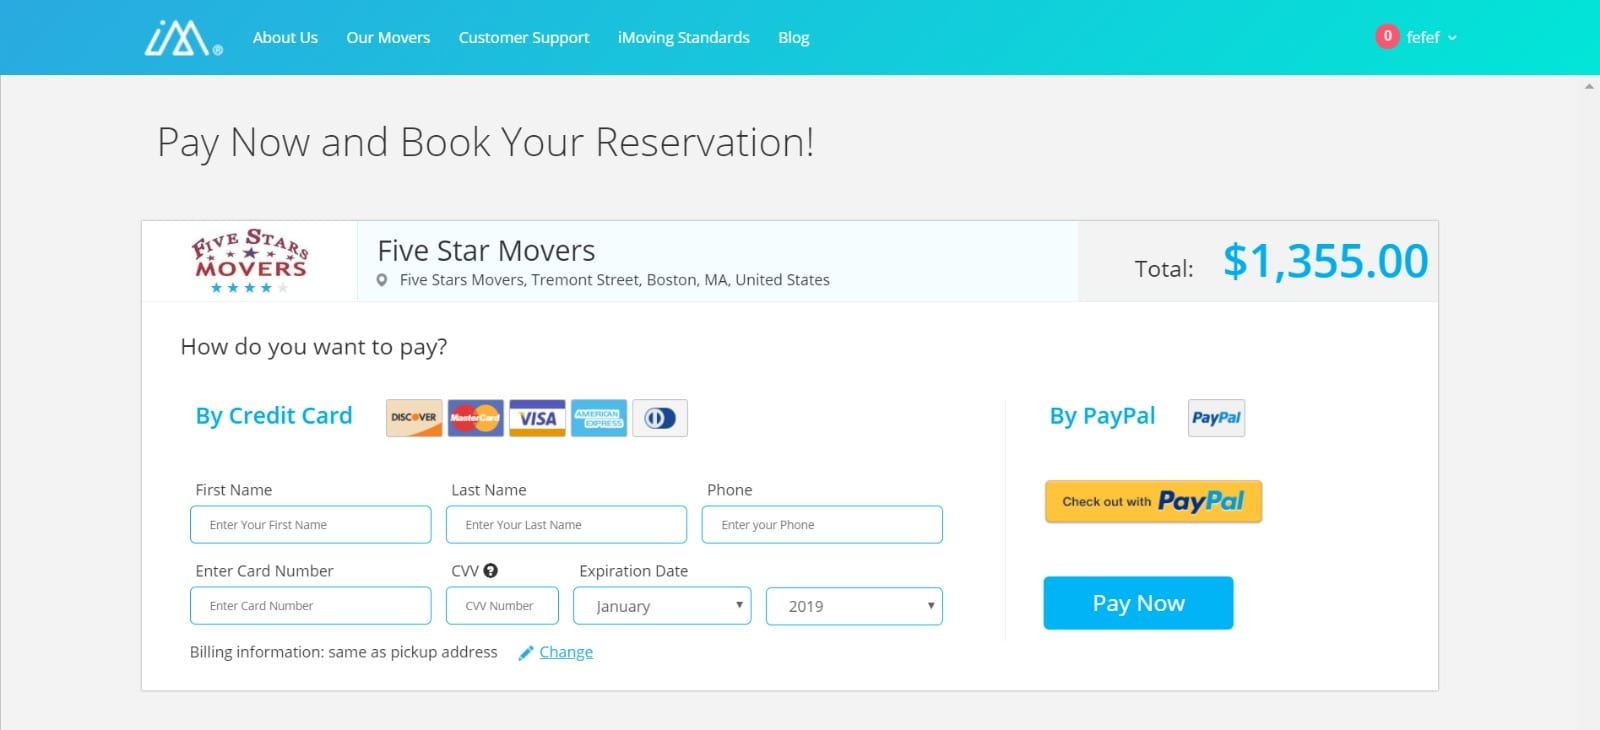 Pay and book your reservation